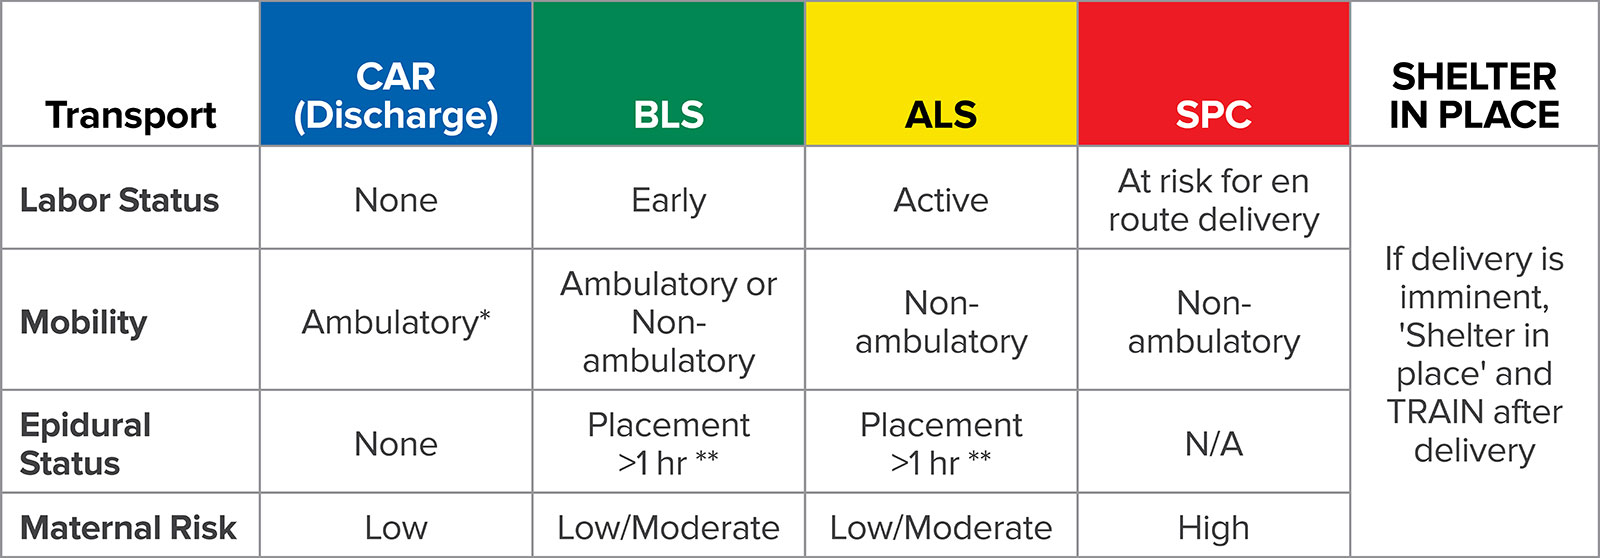 BLS = Basic Life Support (Emergency Medical Technician-staffed ambulance); ALS = Advanced Life Support (Paramedic-staffed ambulance); SPC = Specialized (must be accompanied by MD or Transport Nurse).<br /><br />*Able to rise from a standing squat.<br /><br />**Epidural catheter capped off.